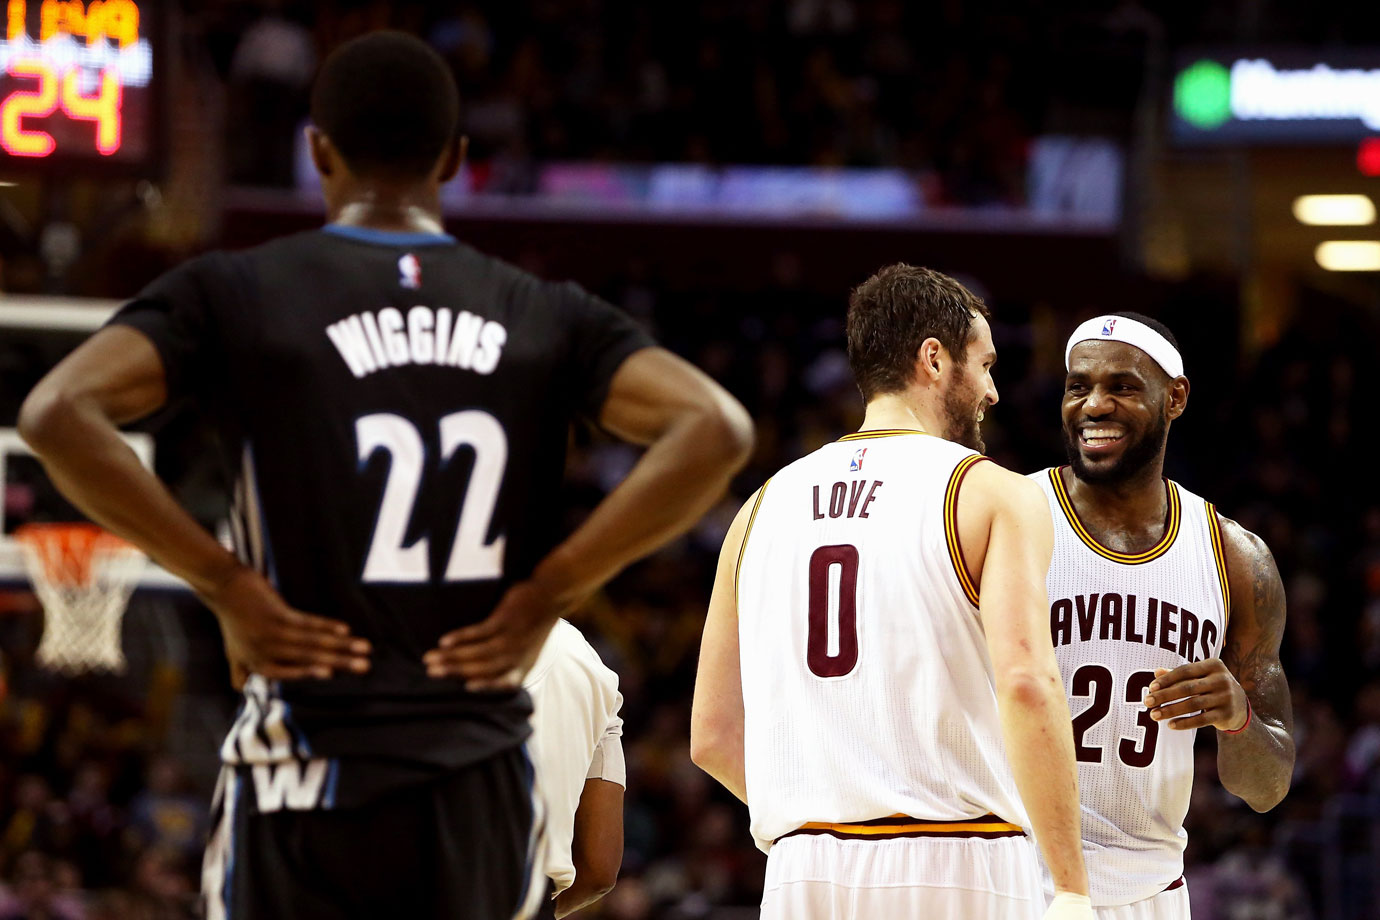 Eight teams had better odds than the Cavaliers, who lucked out yet again with just a 1.7% chance this time. Their selection of Andrew Wiggins parlayed into a trade with Minnesota to acquire Kevin Love two months later. Wiggins went on to win Rookie of the Year with the Timberwolves while Love's numbers dipped with the Cavs and he suffered a dislocated shoulder in the team's 2015 first-round sweep of the Celtics.